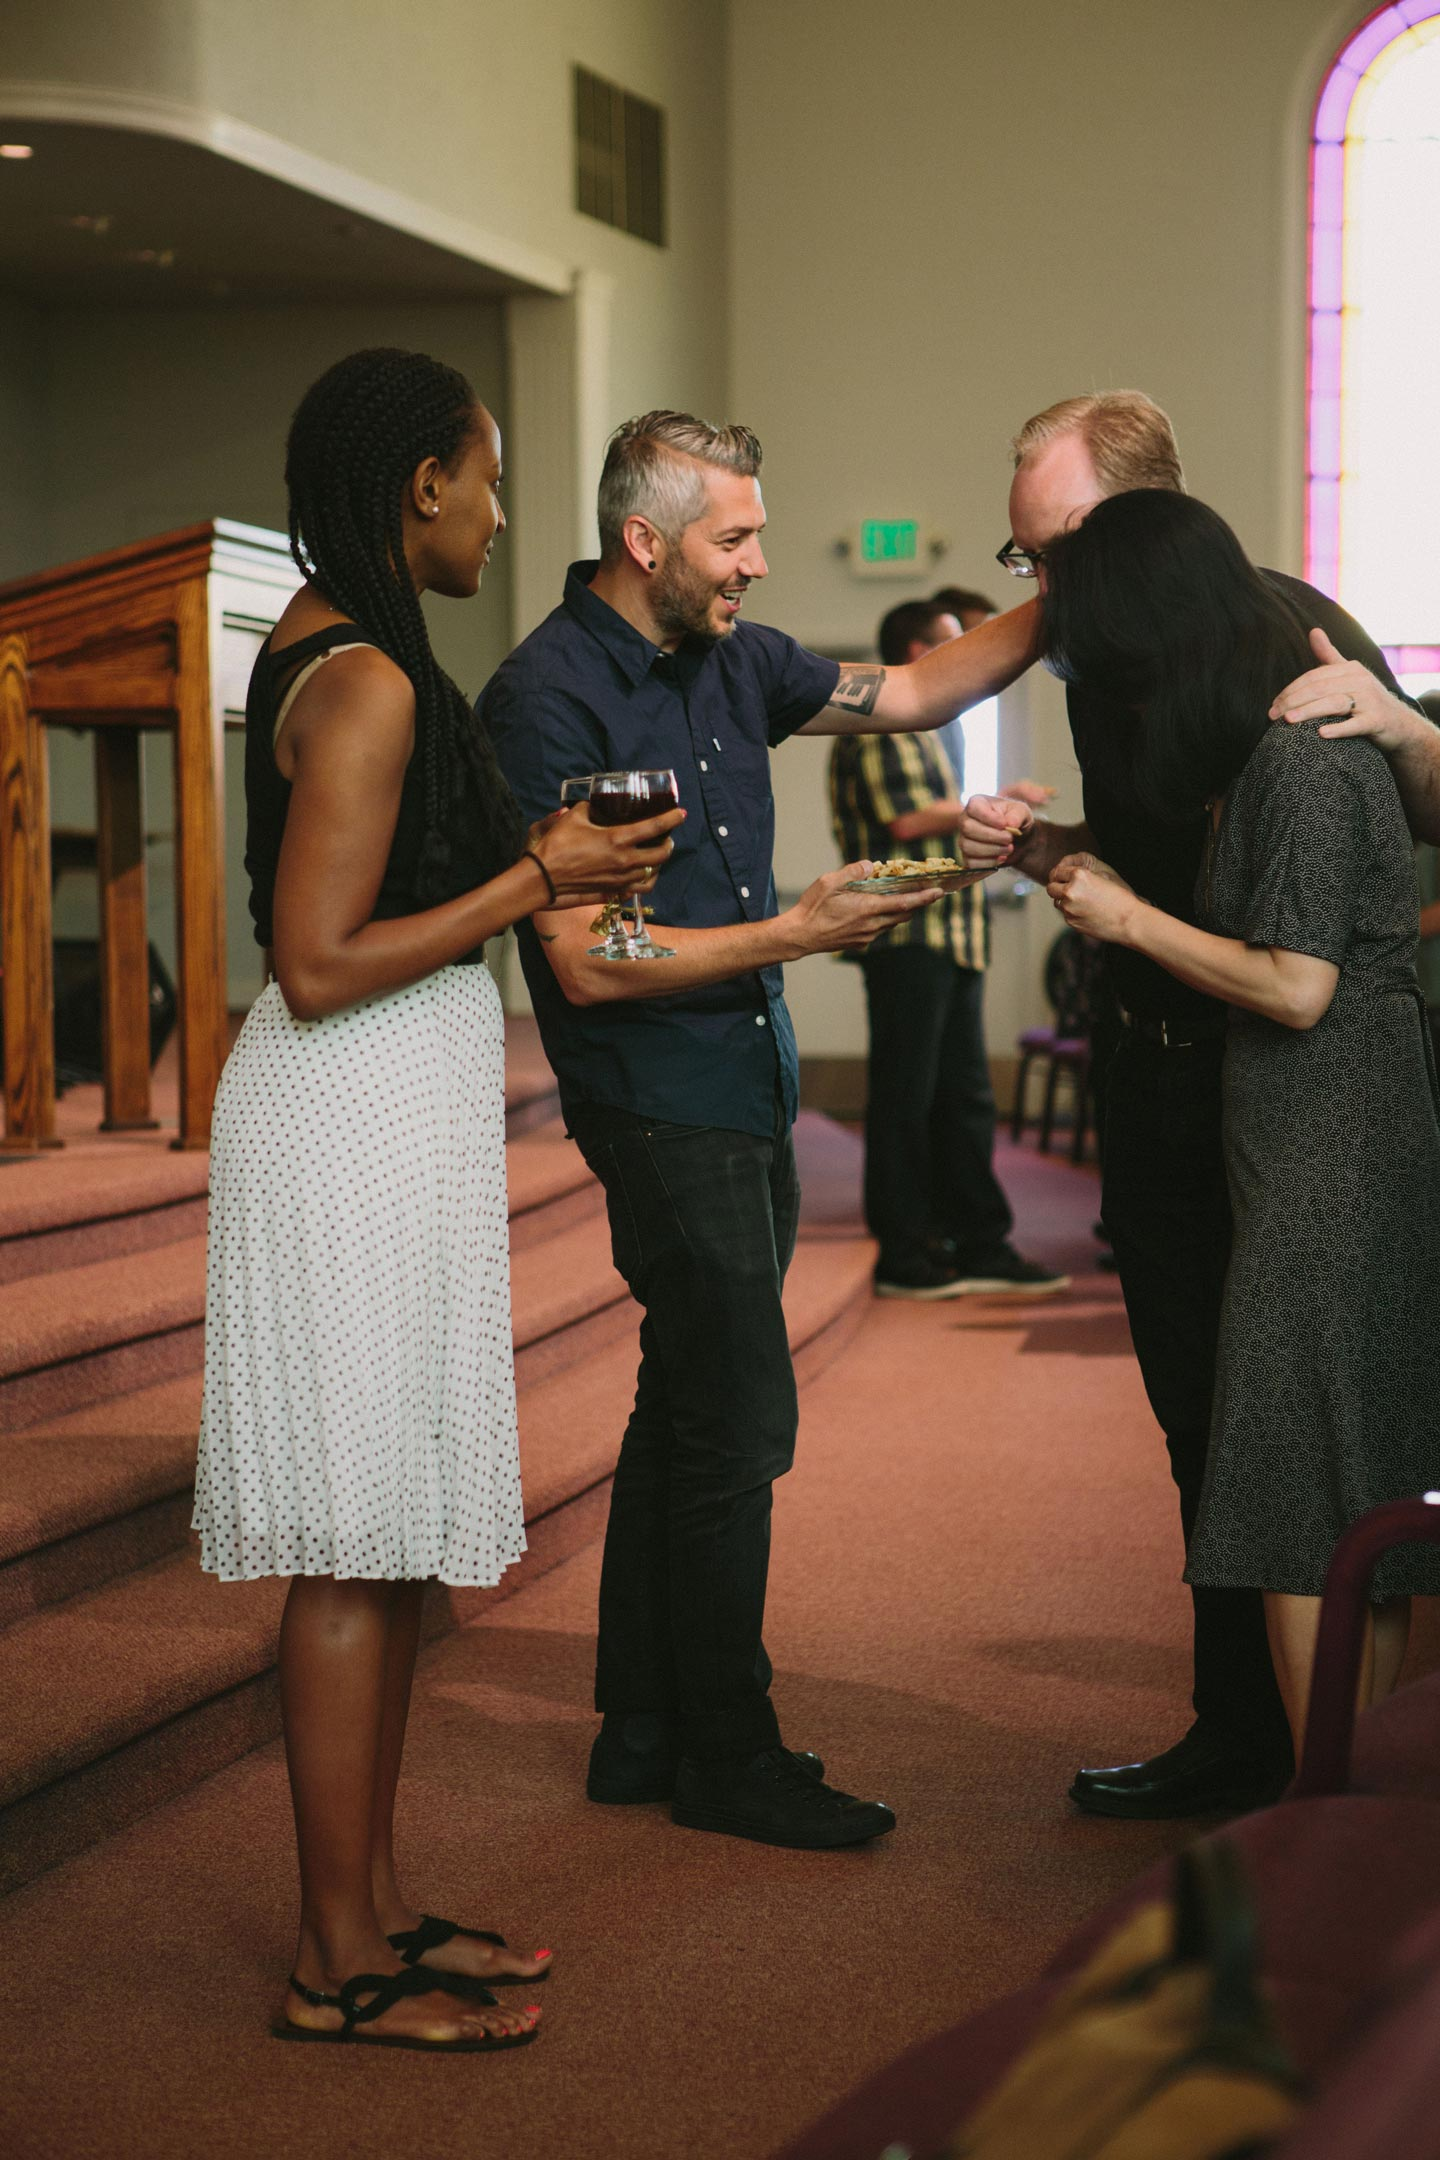 Liturgy - From the moment you step through the doors at Trinity Church, we want you to encounter the beautiful gospel of Jesus Christ. That's why each section of our services are designed to move you closer and closer to our Savior's cross.Sunday mornings begin with a call to worship which build into a reflective time of confession and pardon. To hear how God speaks into our lives, we turn to his word through the sermon followed by a time of corporate, covenant renewal where we together declare the essentials of our Christian faith and take the Lord's Supper.We end our services with a response of praise and by receiving again God's good blessings for his people. These times together serves to remind us that God has made sinners like us, saints called to be like him. That is why Sunday mornings at Trinity are, and will always be, about the gospel.